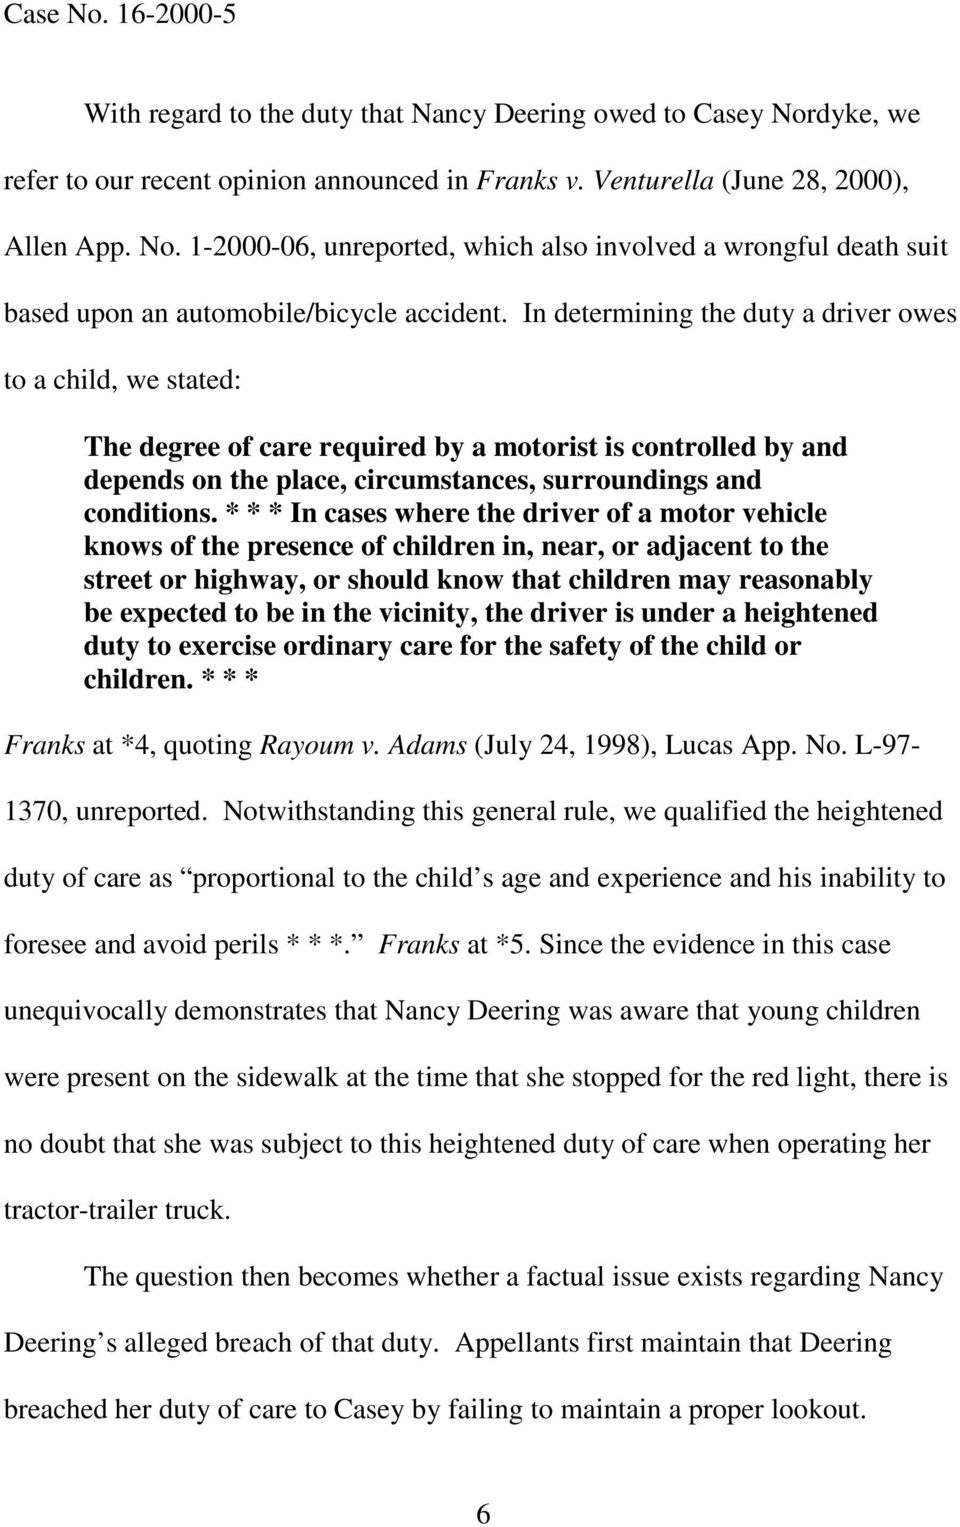 * * * In cases where the driver of a motor vehicle knows of the presence of children in, near, or adjacent to the street or highway, or should know that children may reasonably be expected to be in